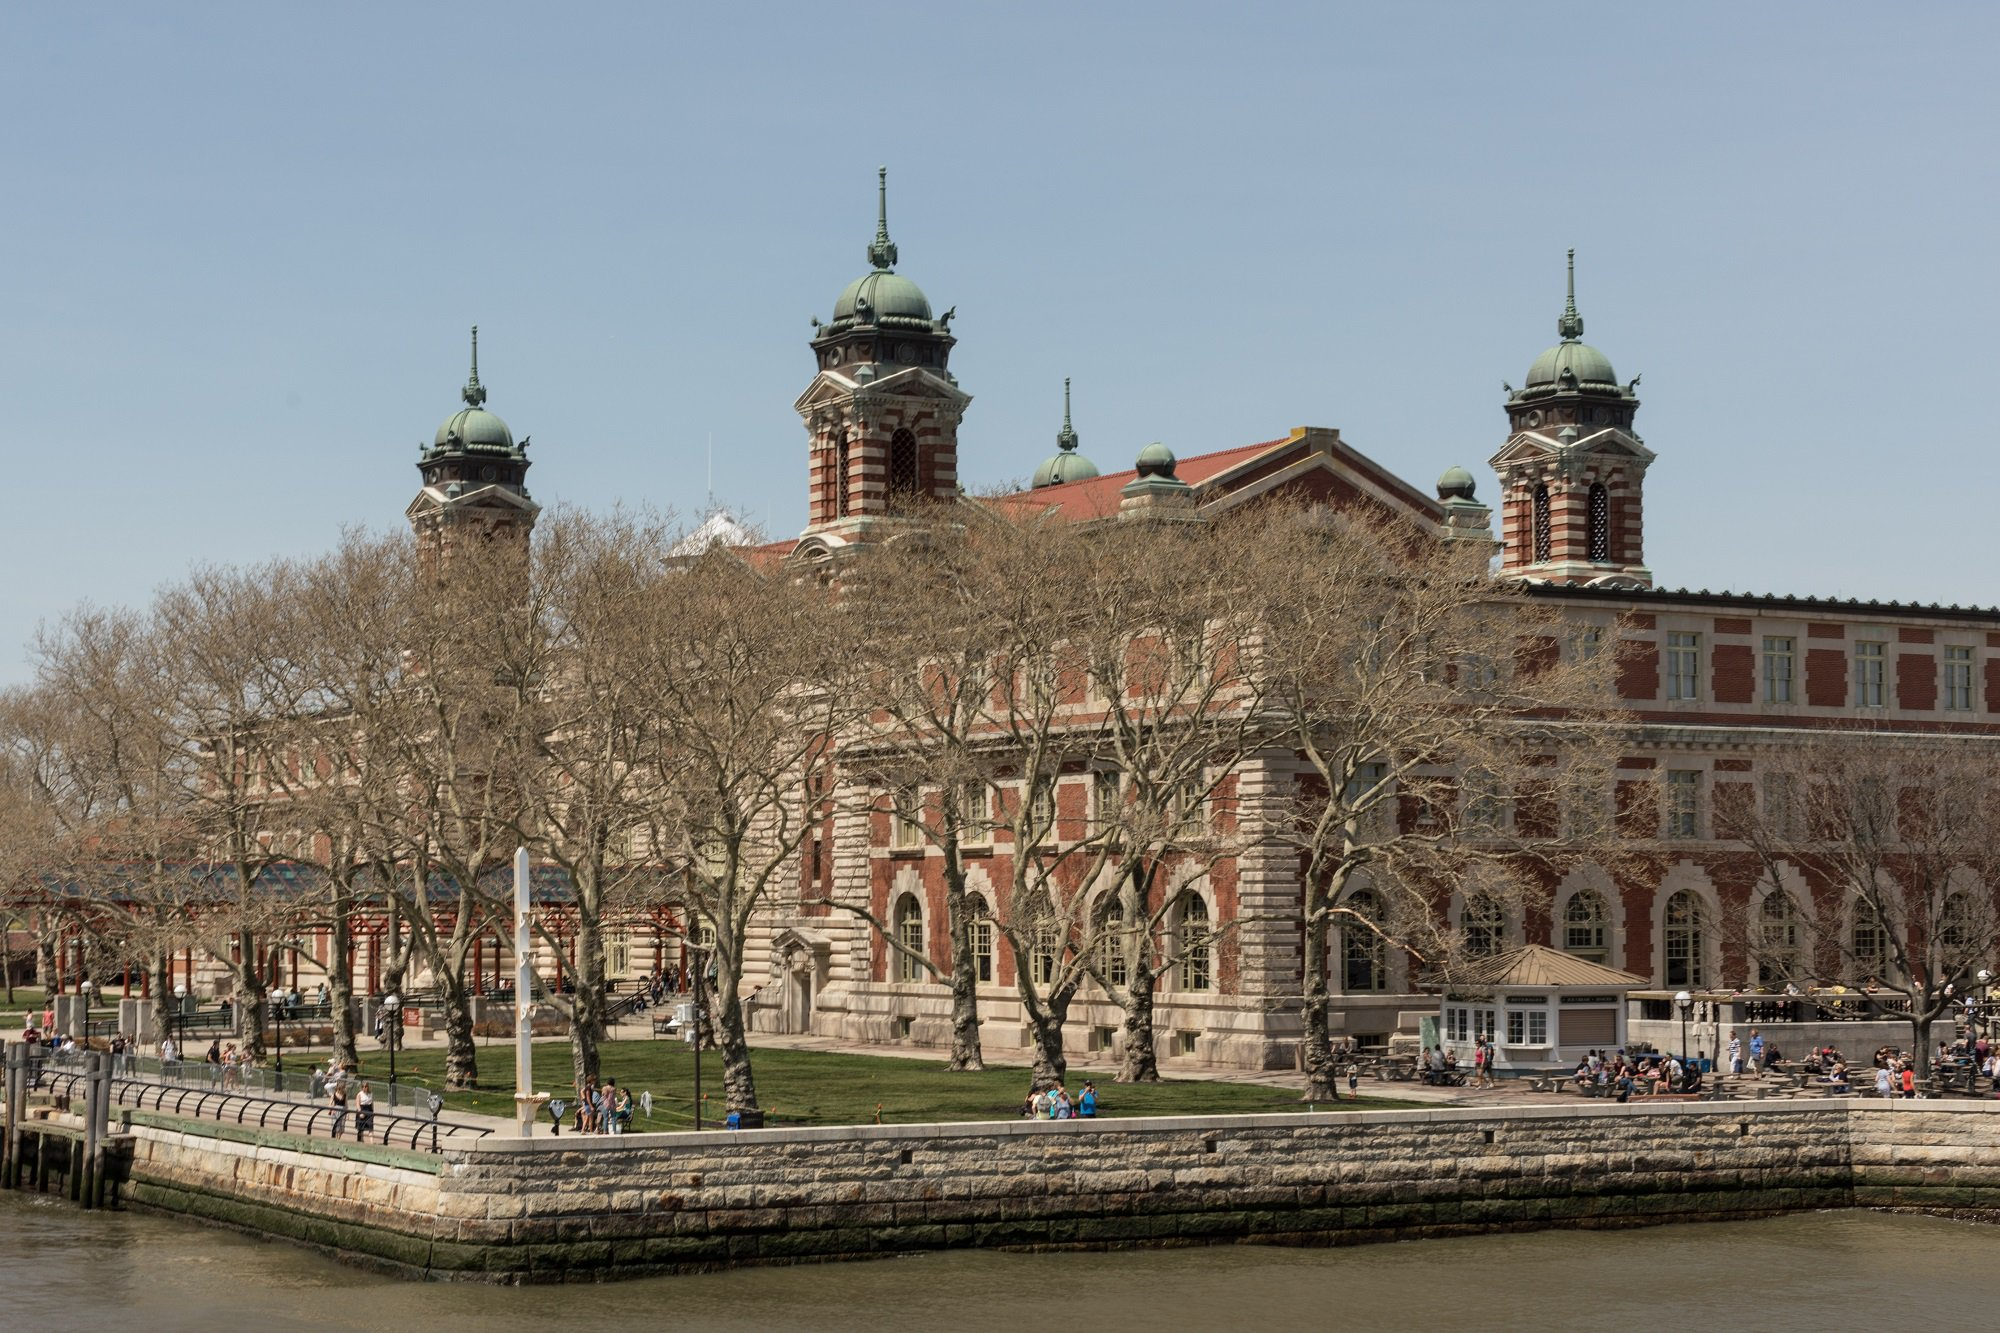 Photo: Ellis Island. Credit: Jessie Parks/ODI, 2018